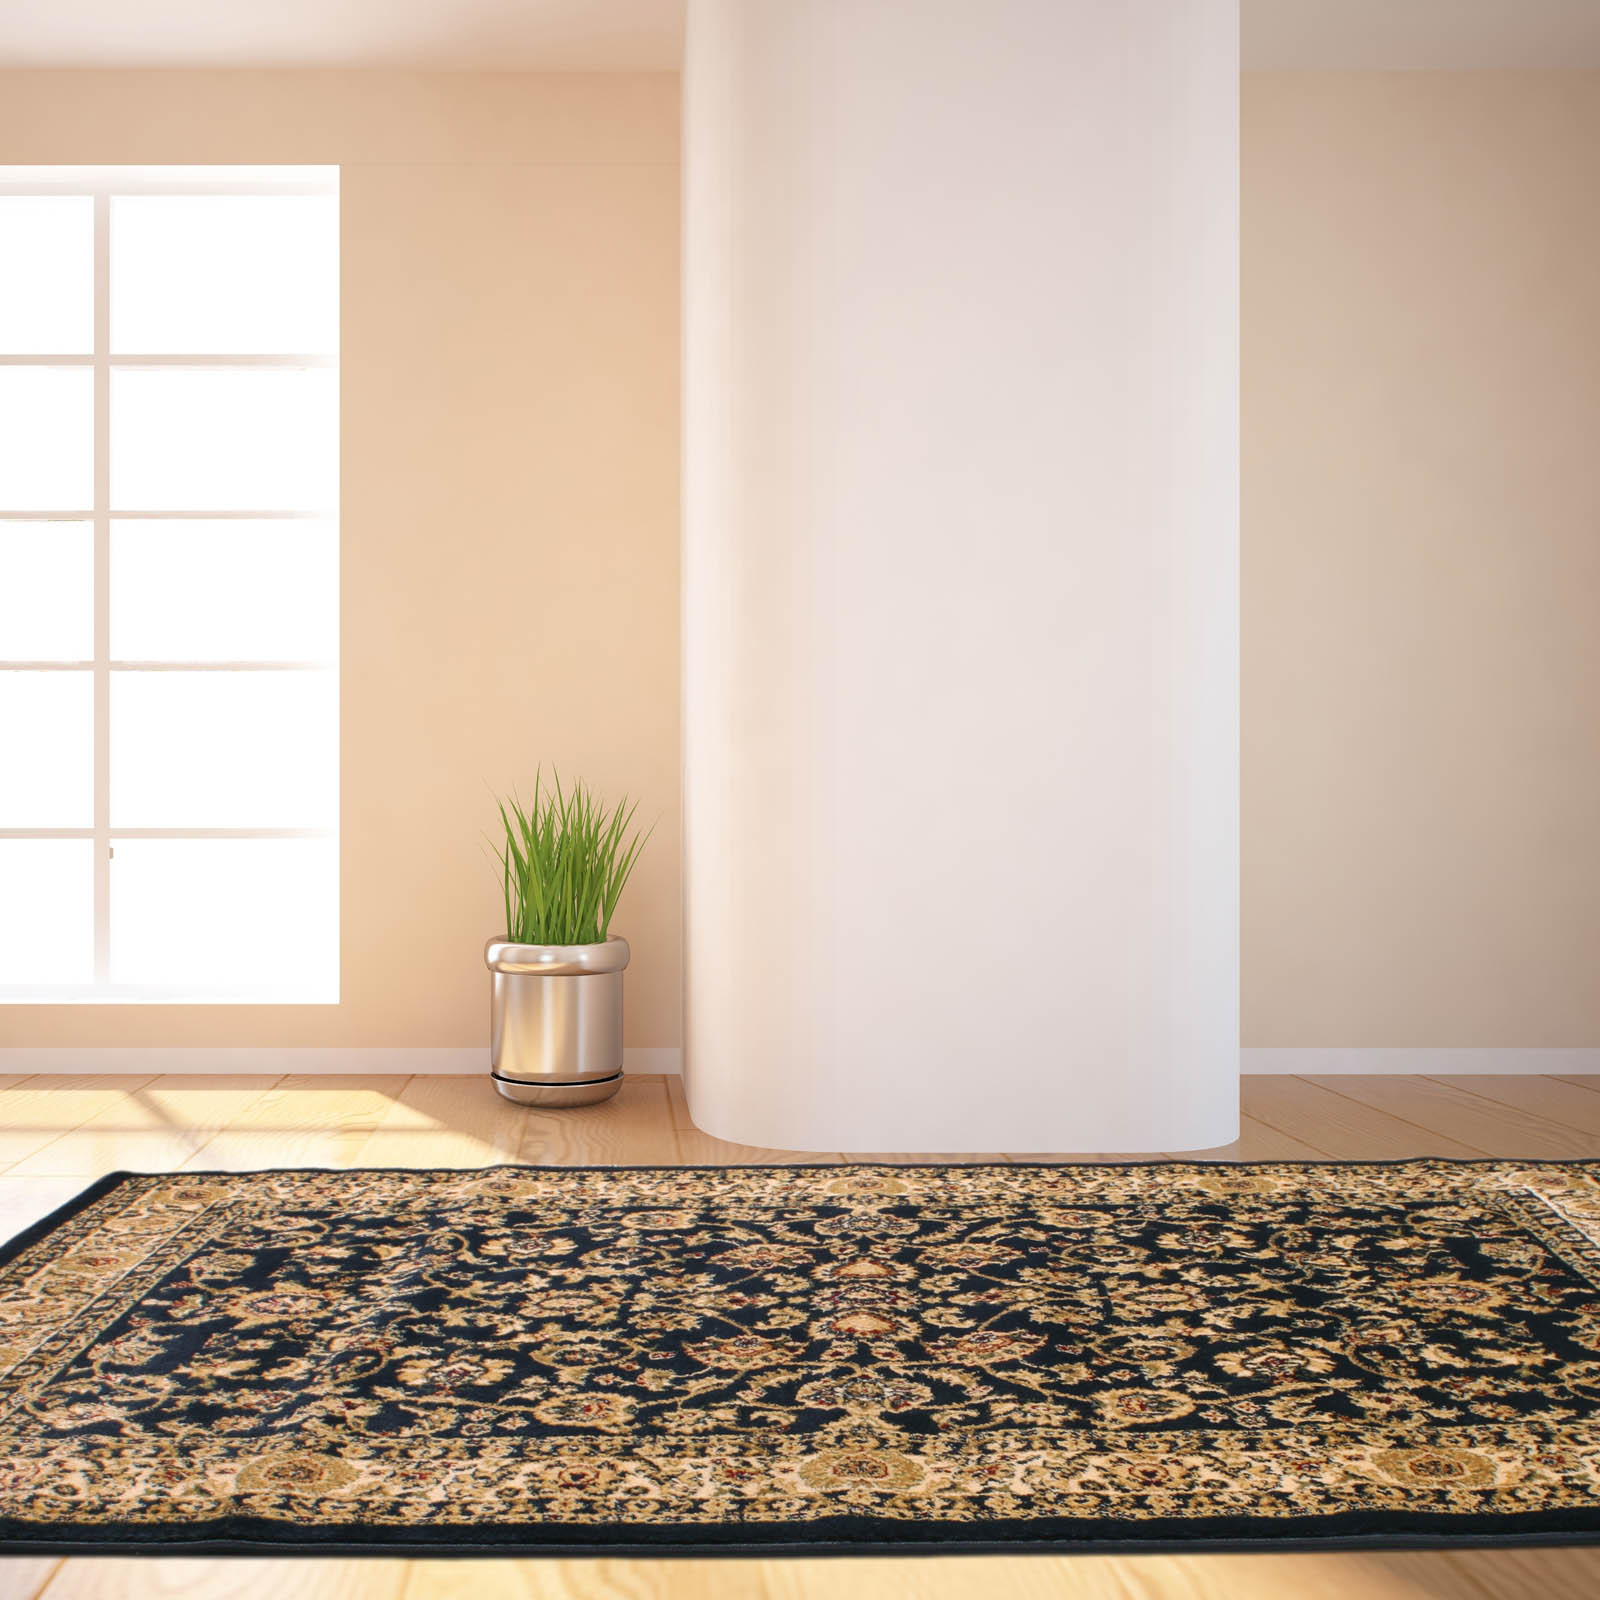 Tabriz Traditional Rugs 001 in Navy